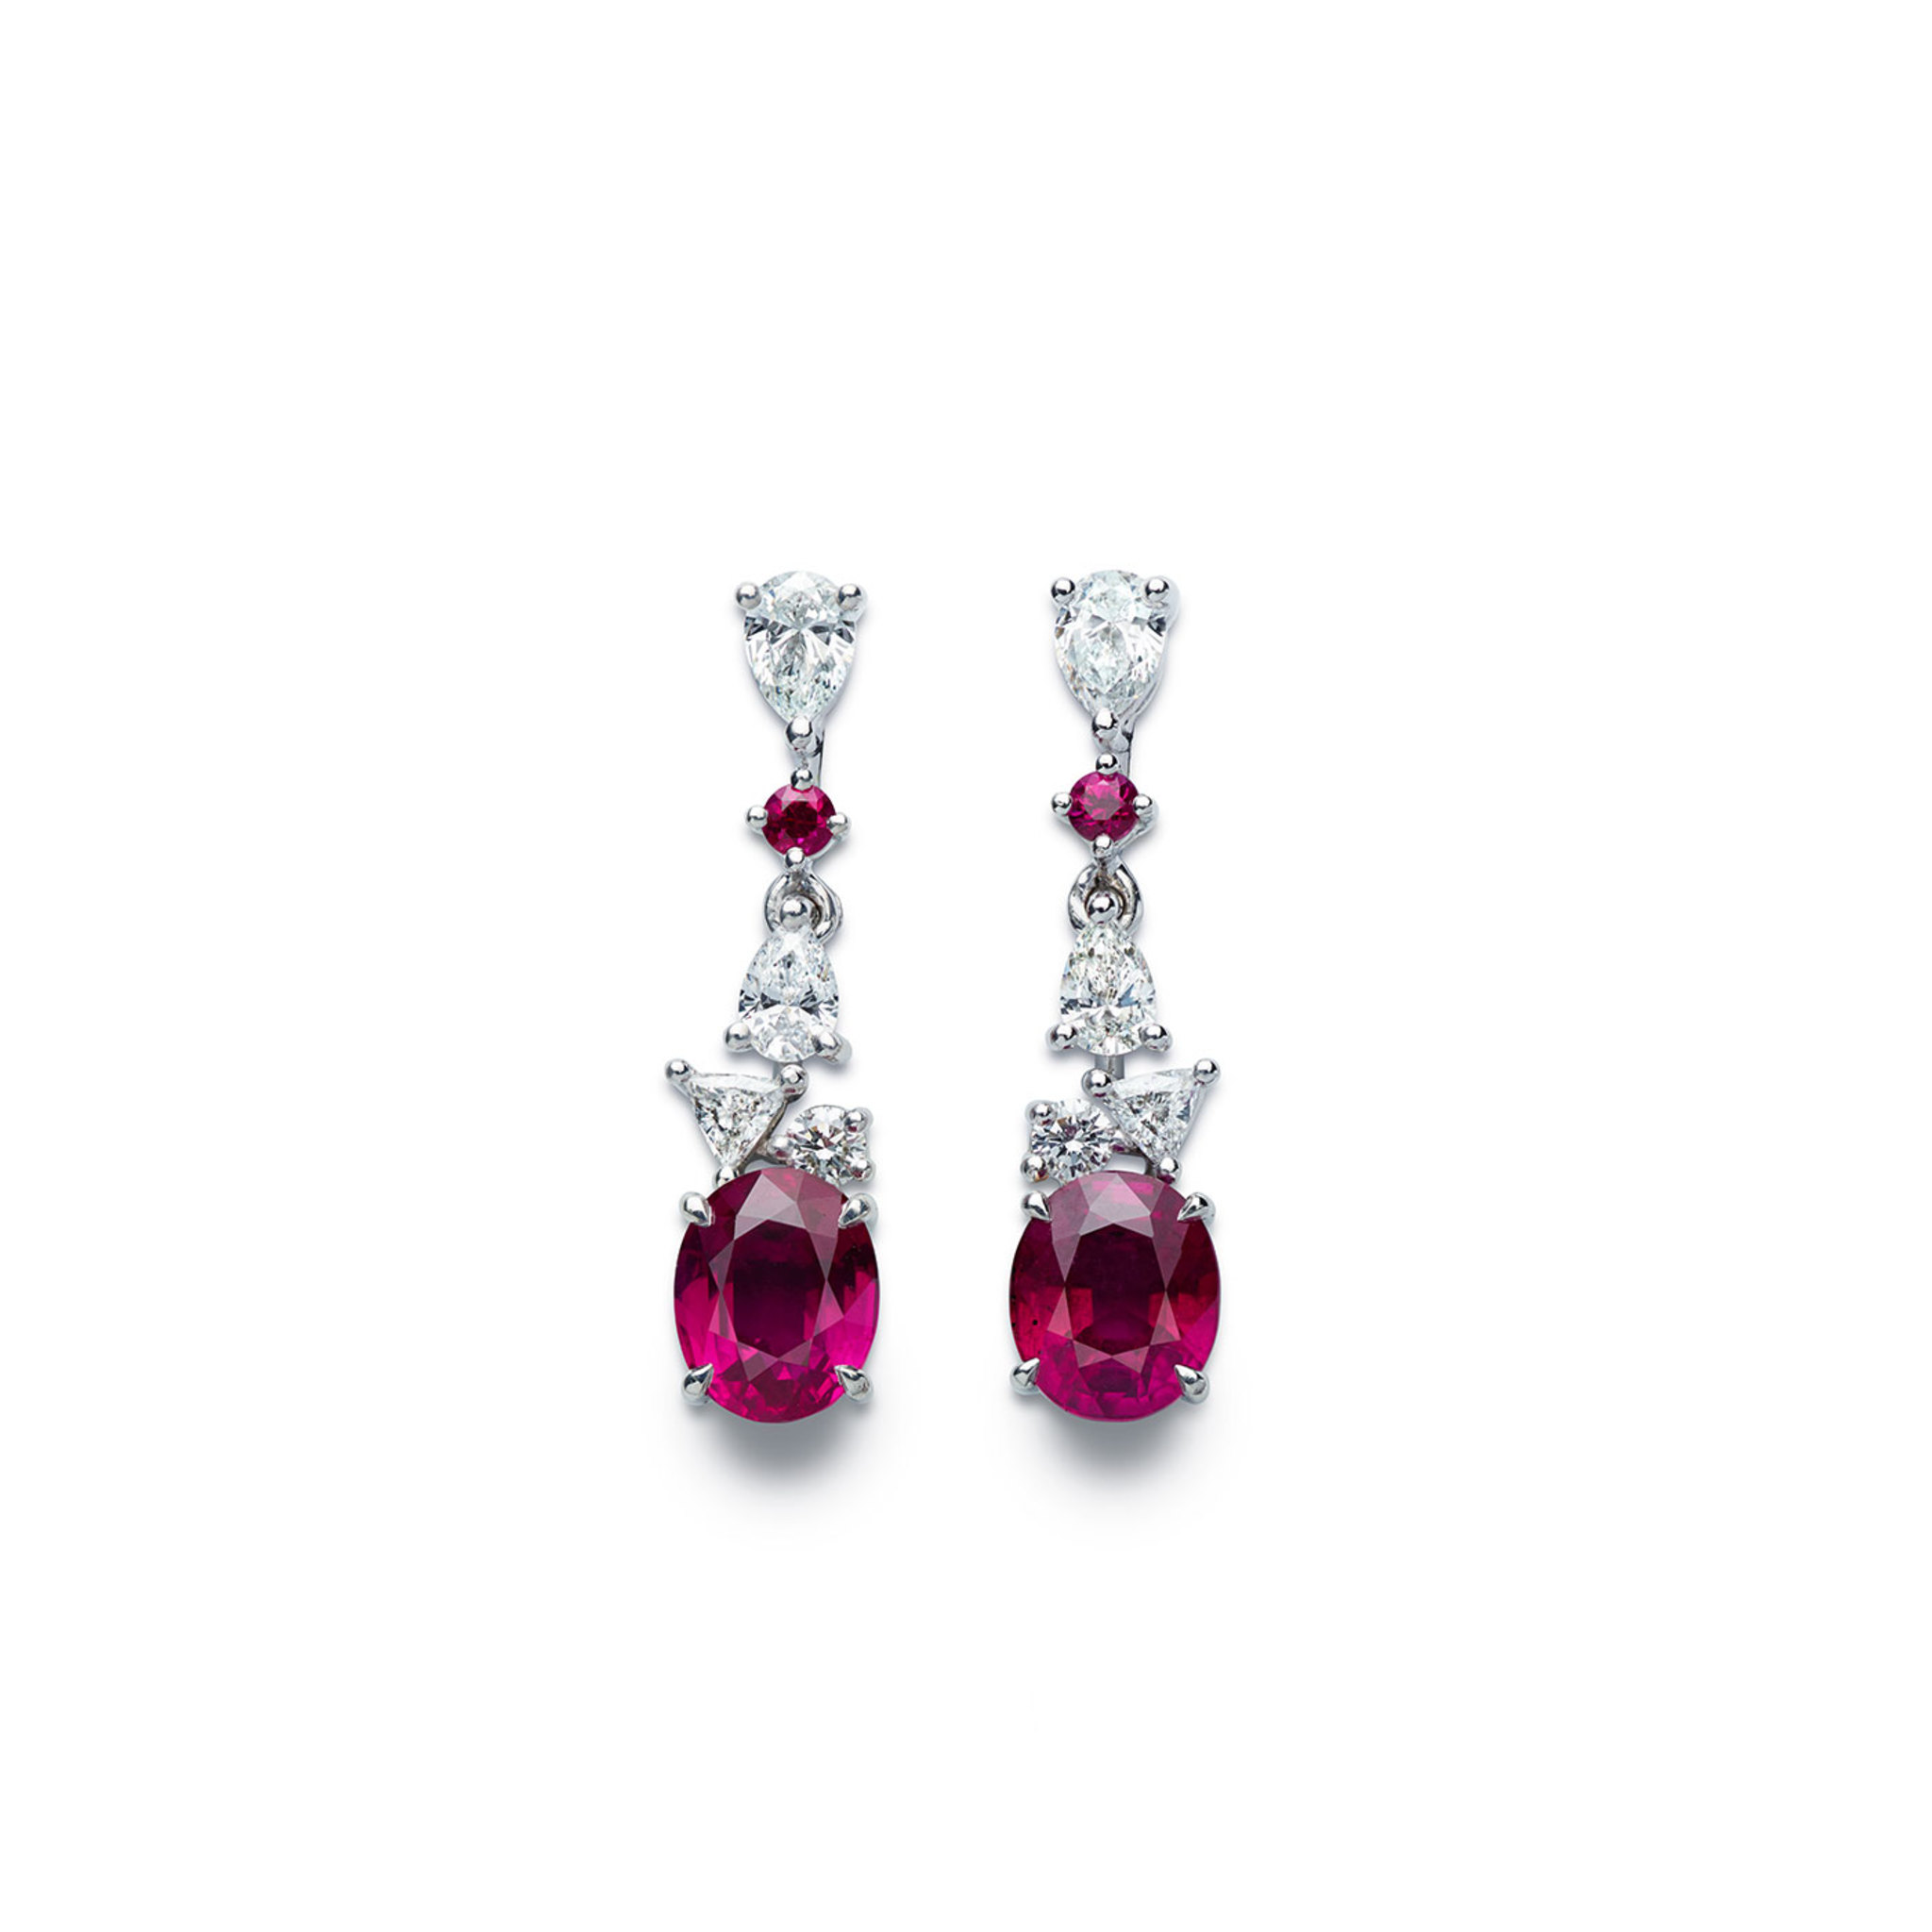 Earrings with rubies